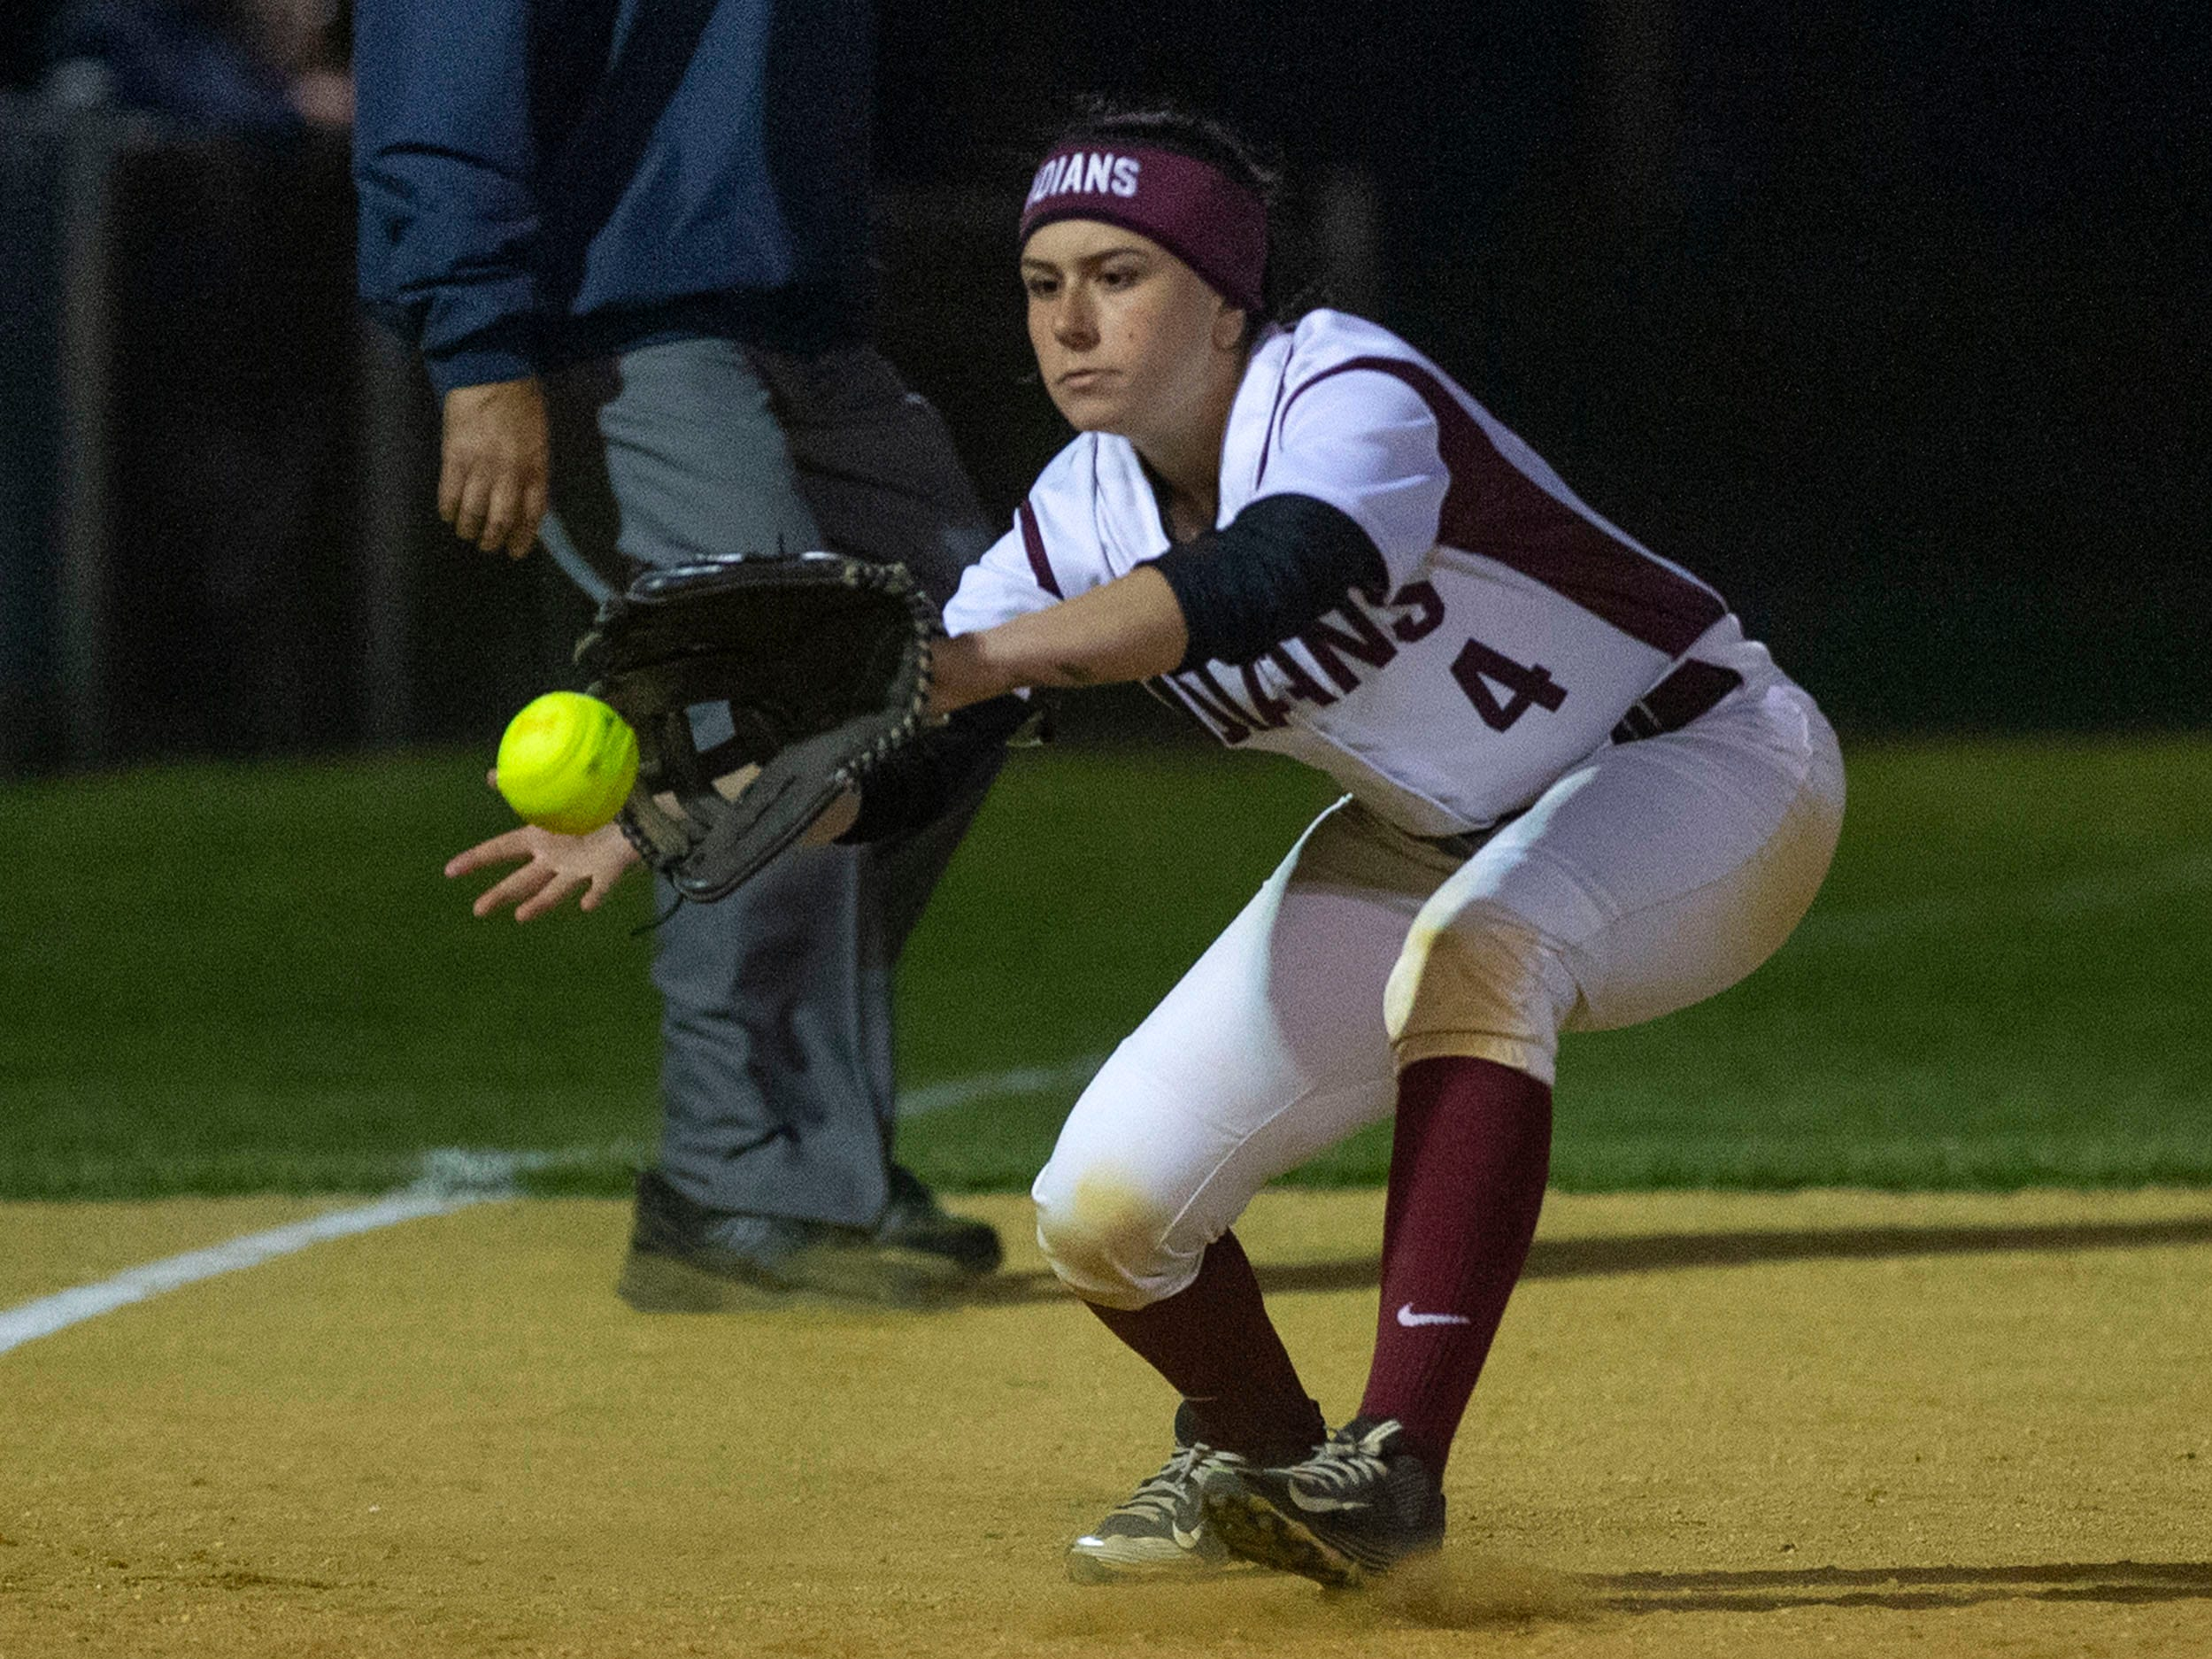 Brick Memorial softball defeats Toms River South 9-1 in Ocean County Championship game in Toms River on May 4, 2019.